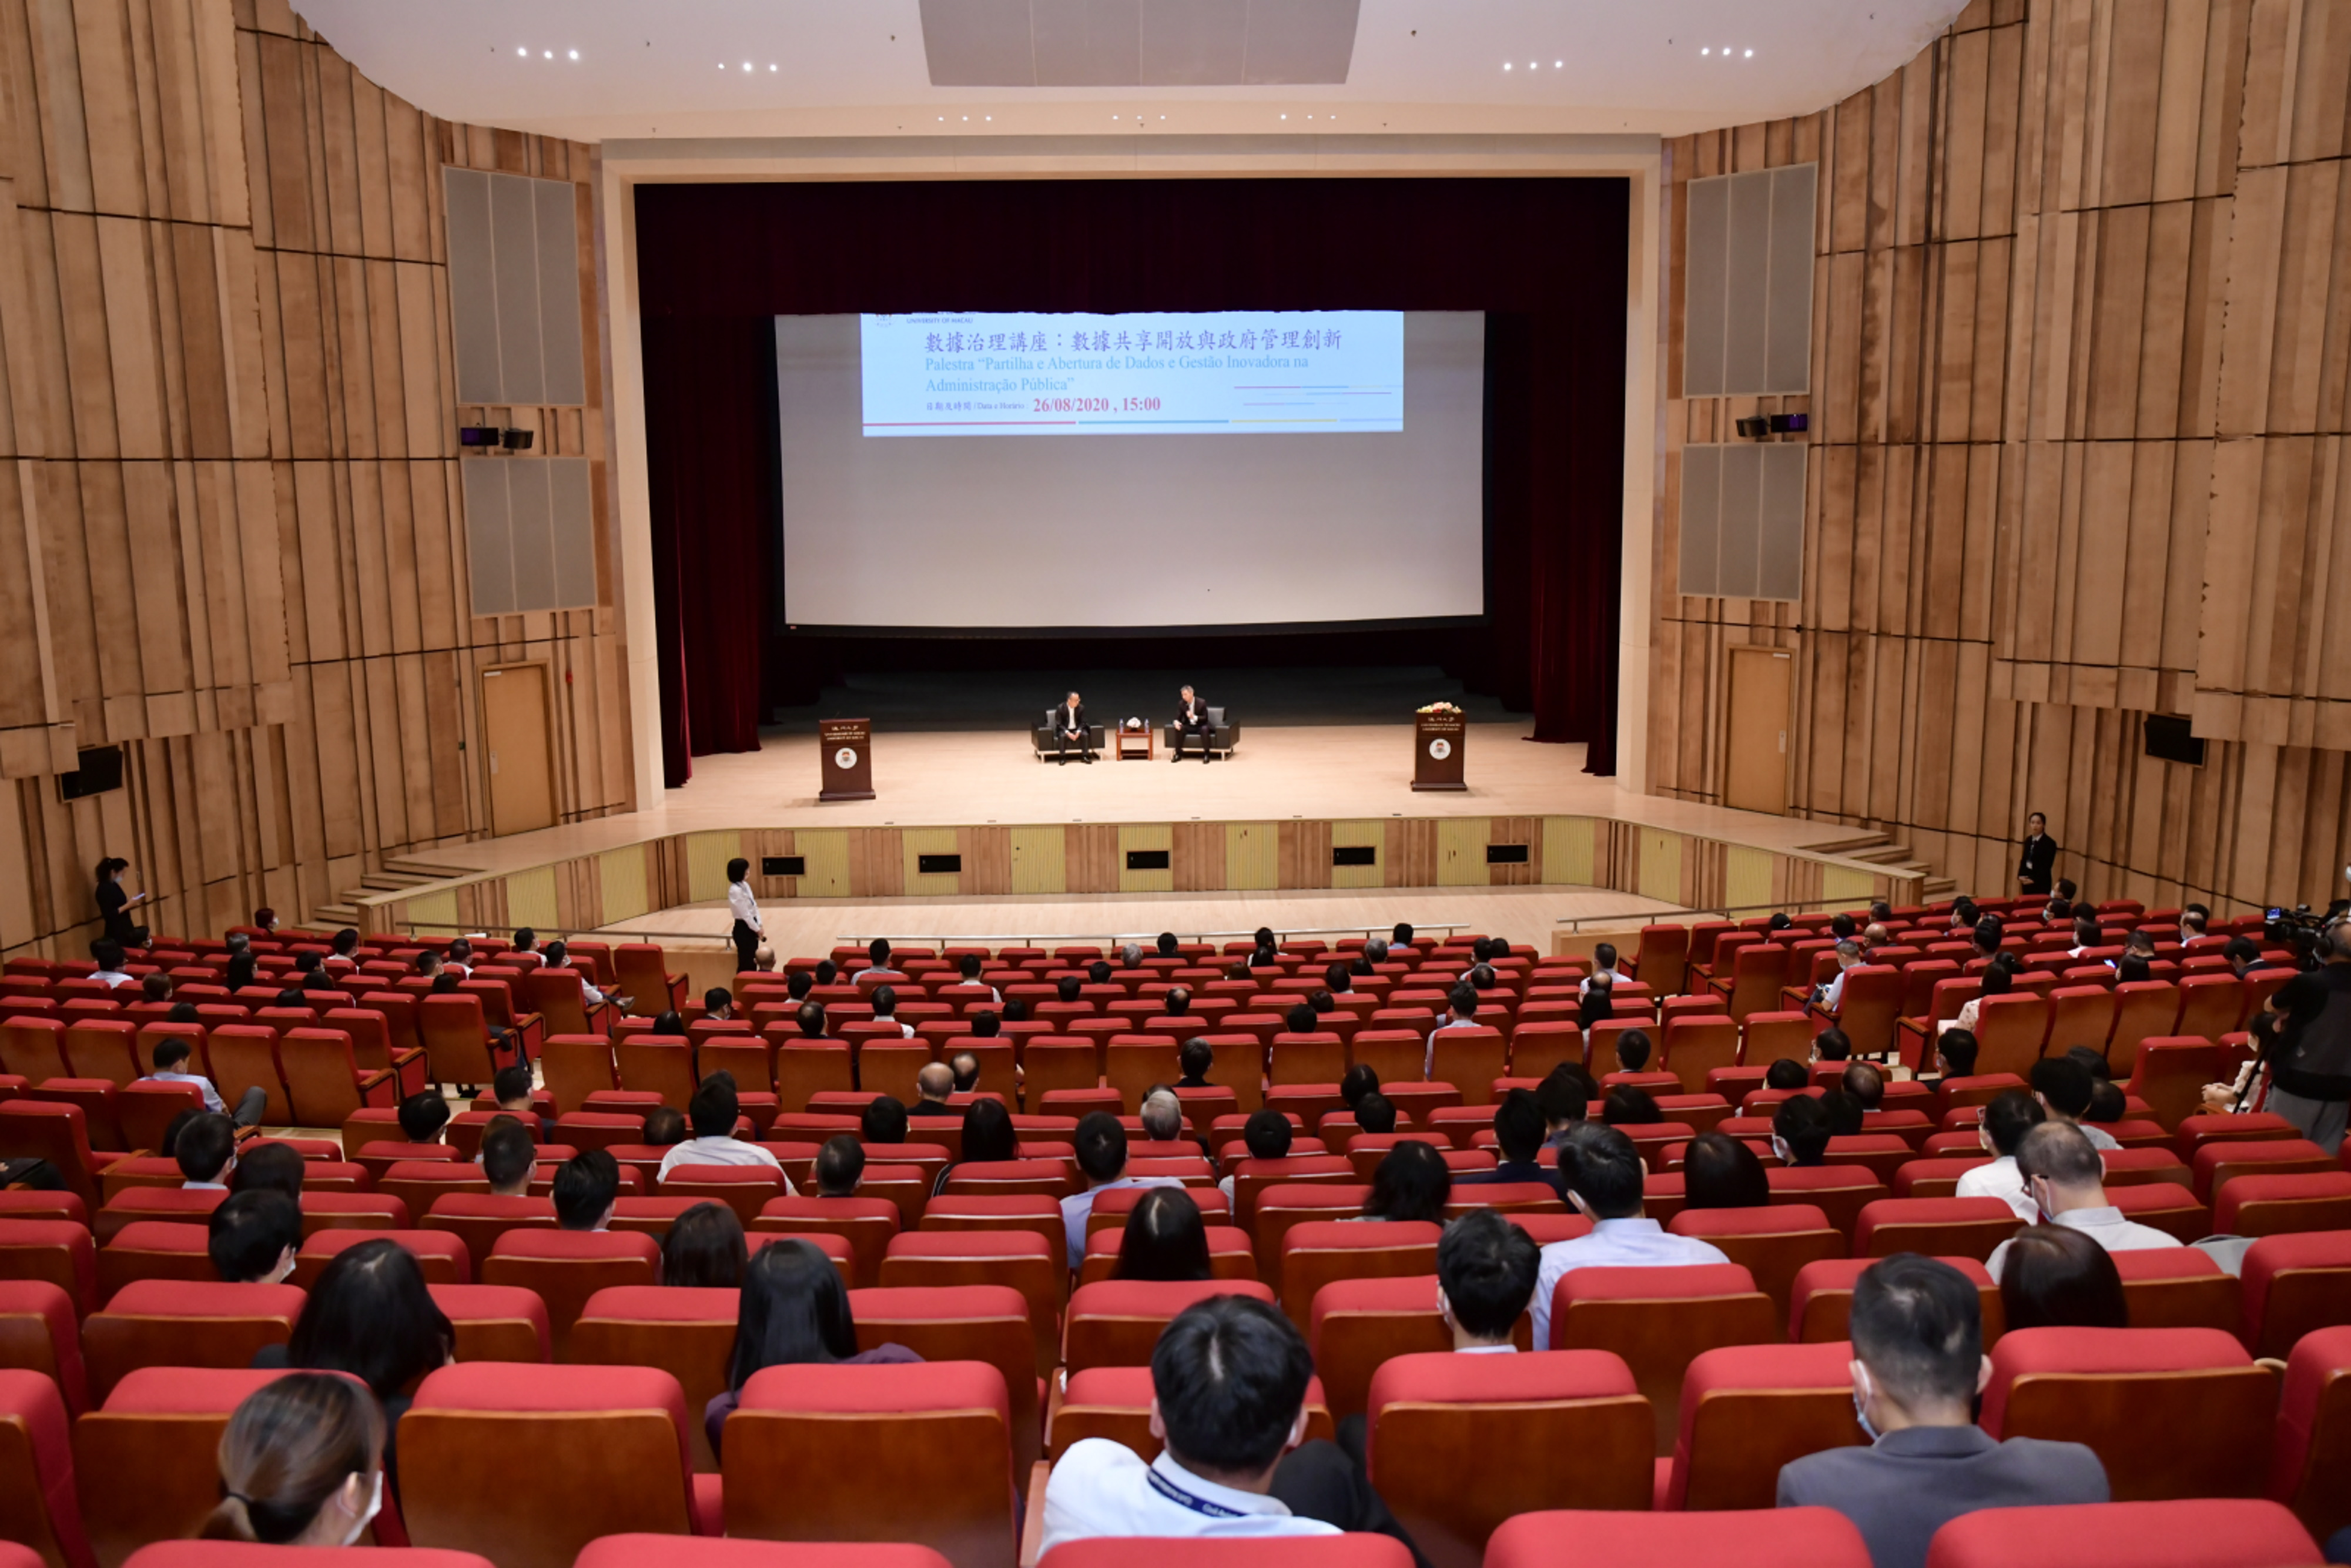 UM and SAFP co-organise a lecture on data sharing and innovation in government management